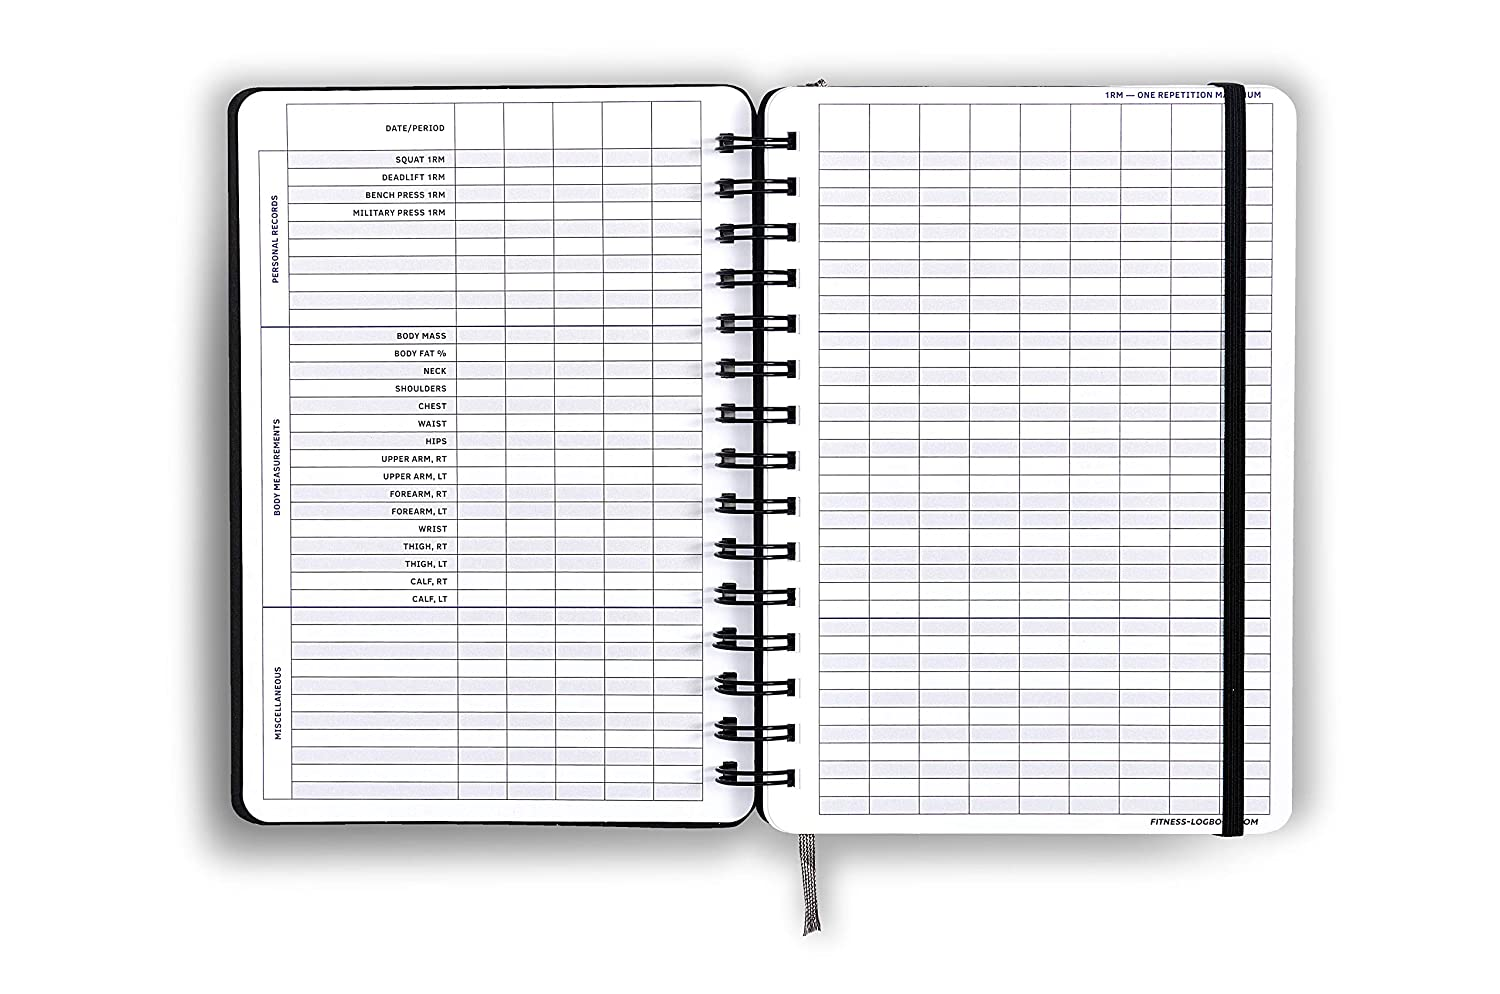 6 x 8 inches Fitness Logbook: Undated Workout Journal Stylish Elastic Closure Thick Paper Round Corners Minimalistic and Easy-to-Use Gym Log Book Hard Cover Sturdy Binding